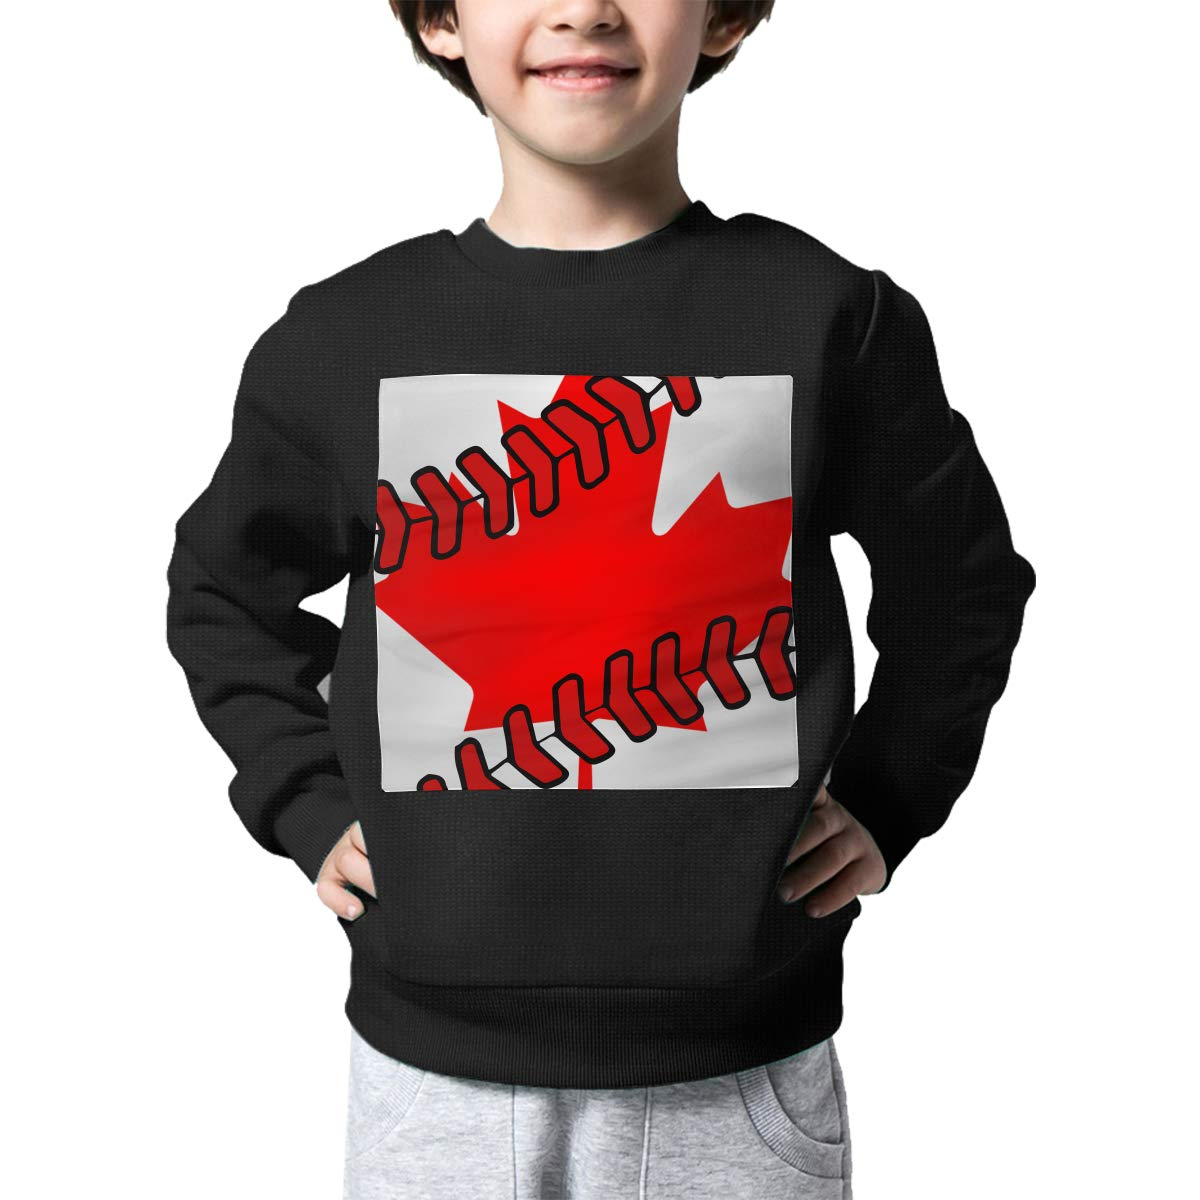 Boys Girls Canada Flag Baseball Clip Art Lovely Sweaters Soft Warm Kids Sweater